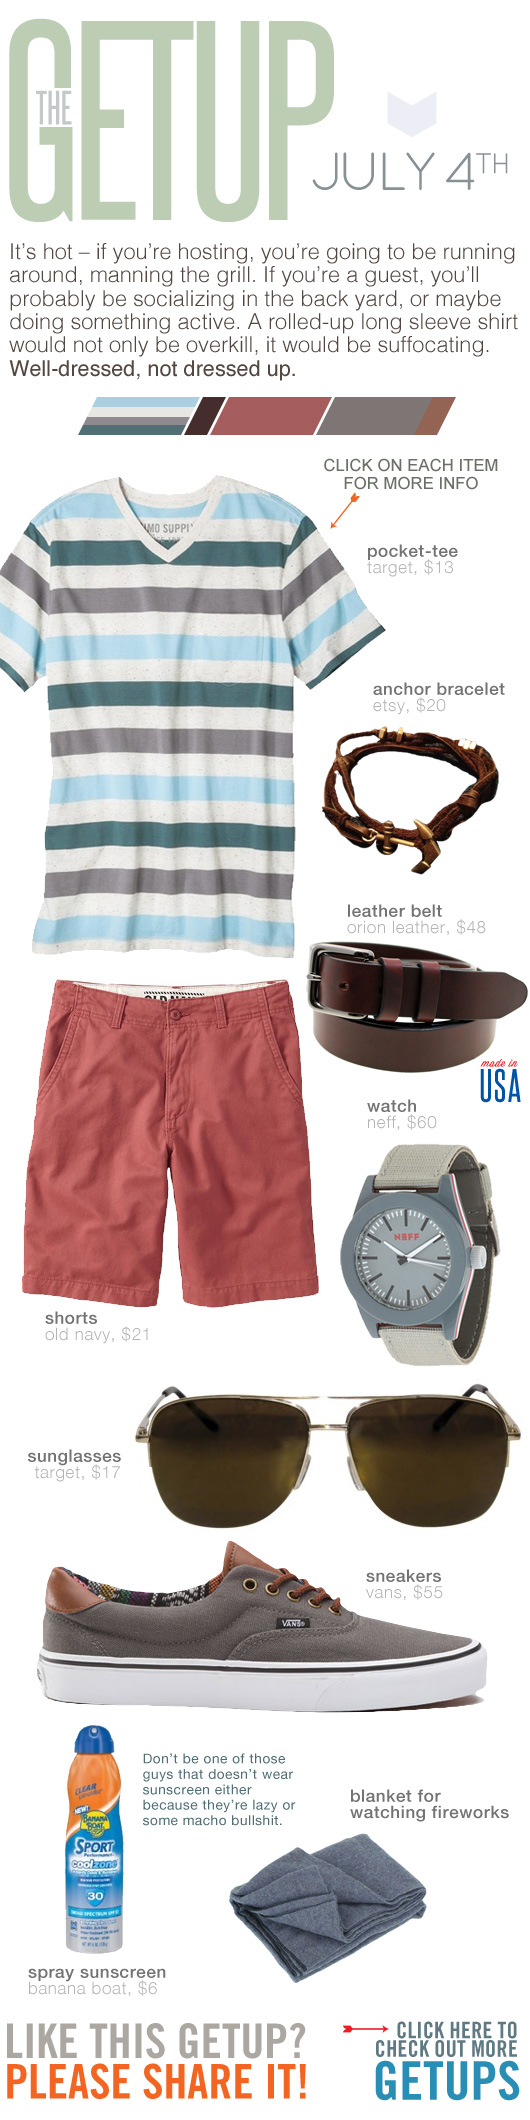 Getup July 4th - Striped t-shirt, pink shorts, gray sneakers